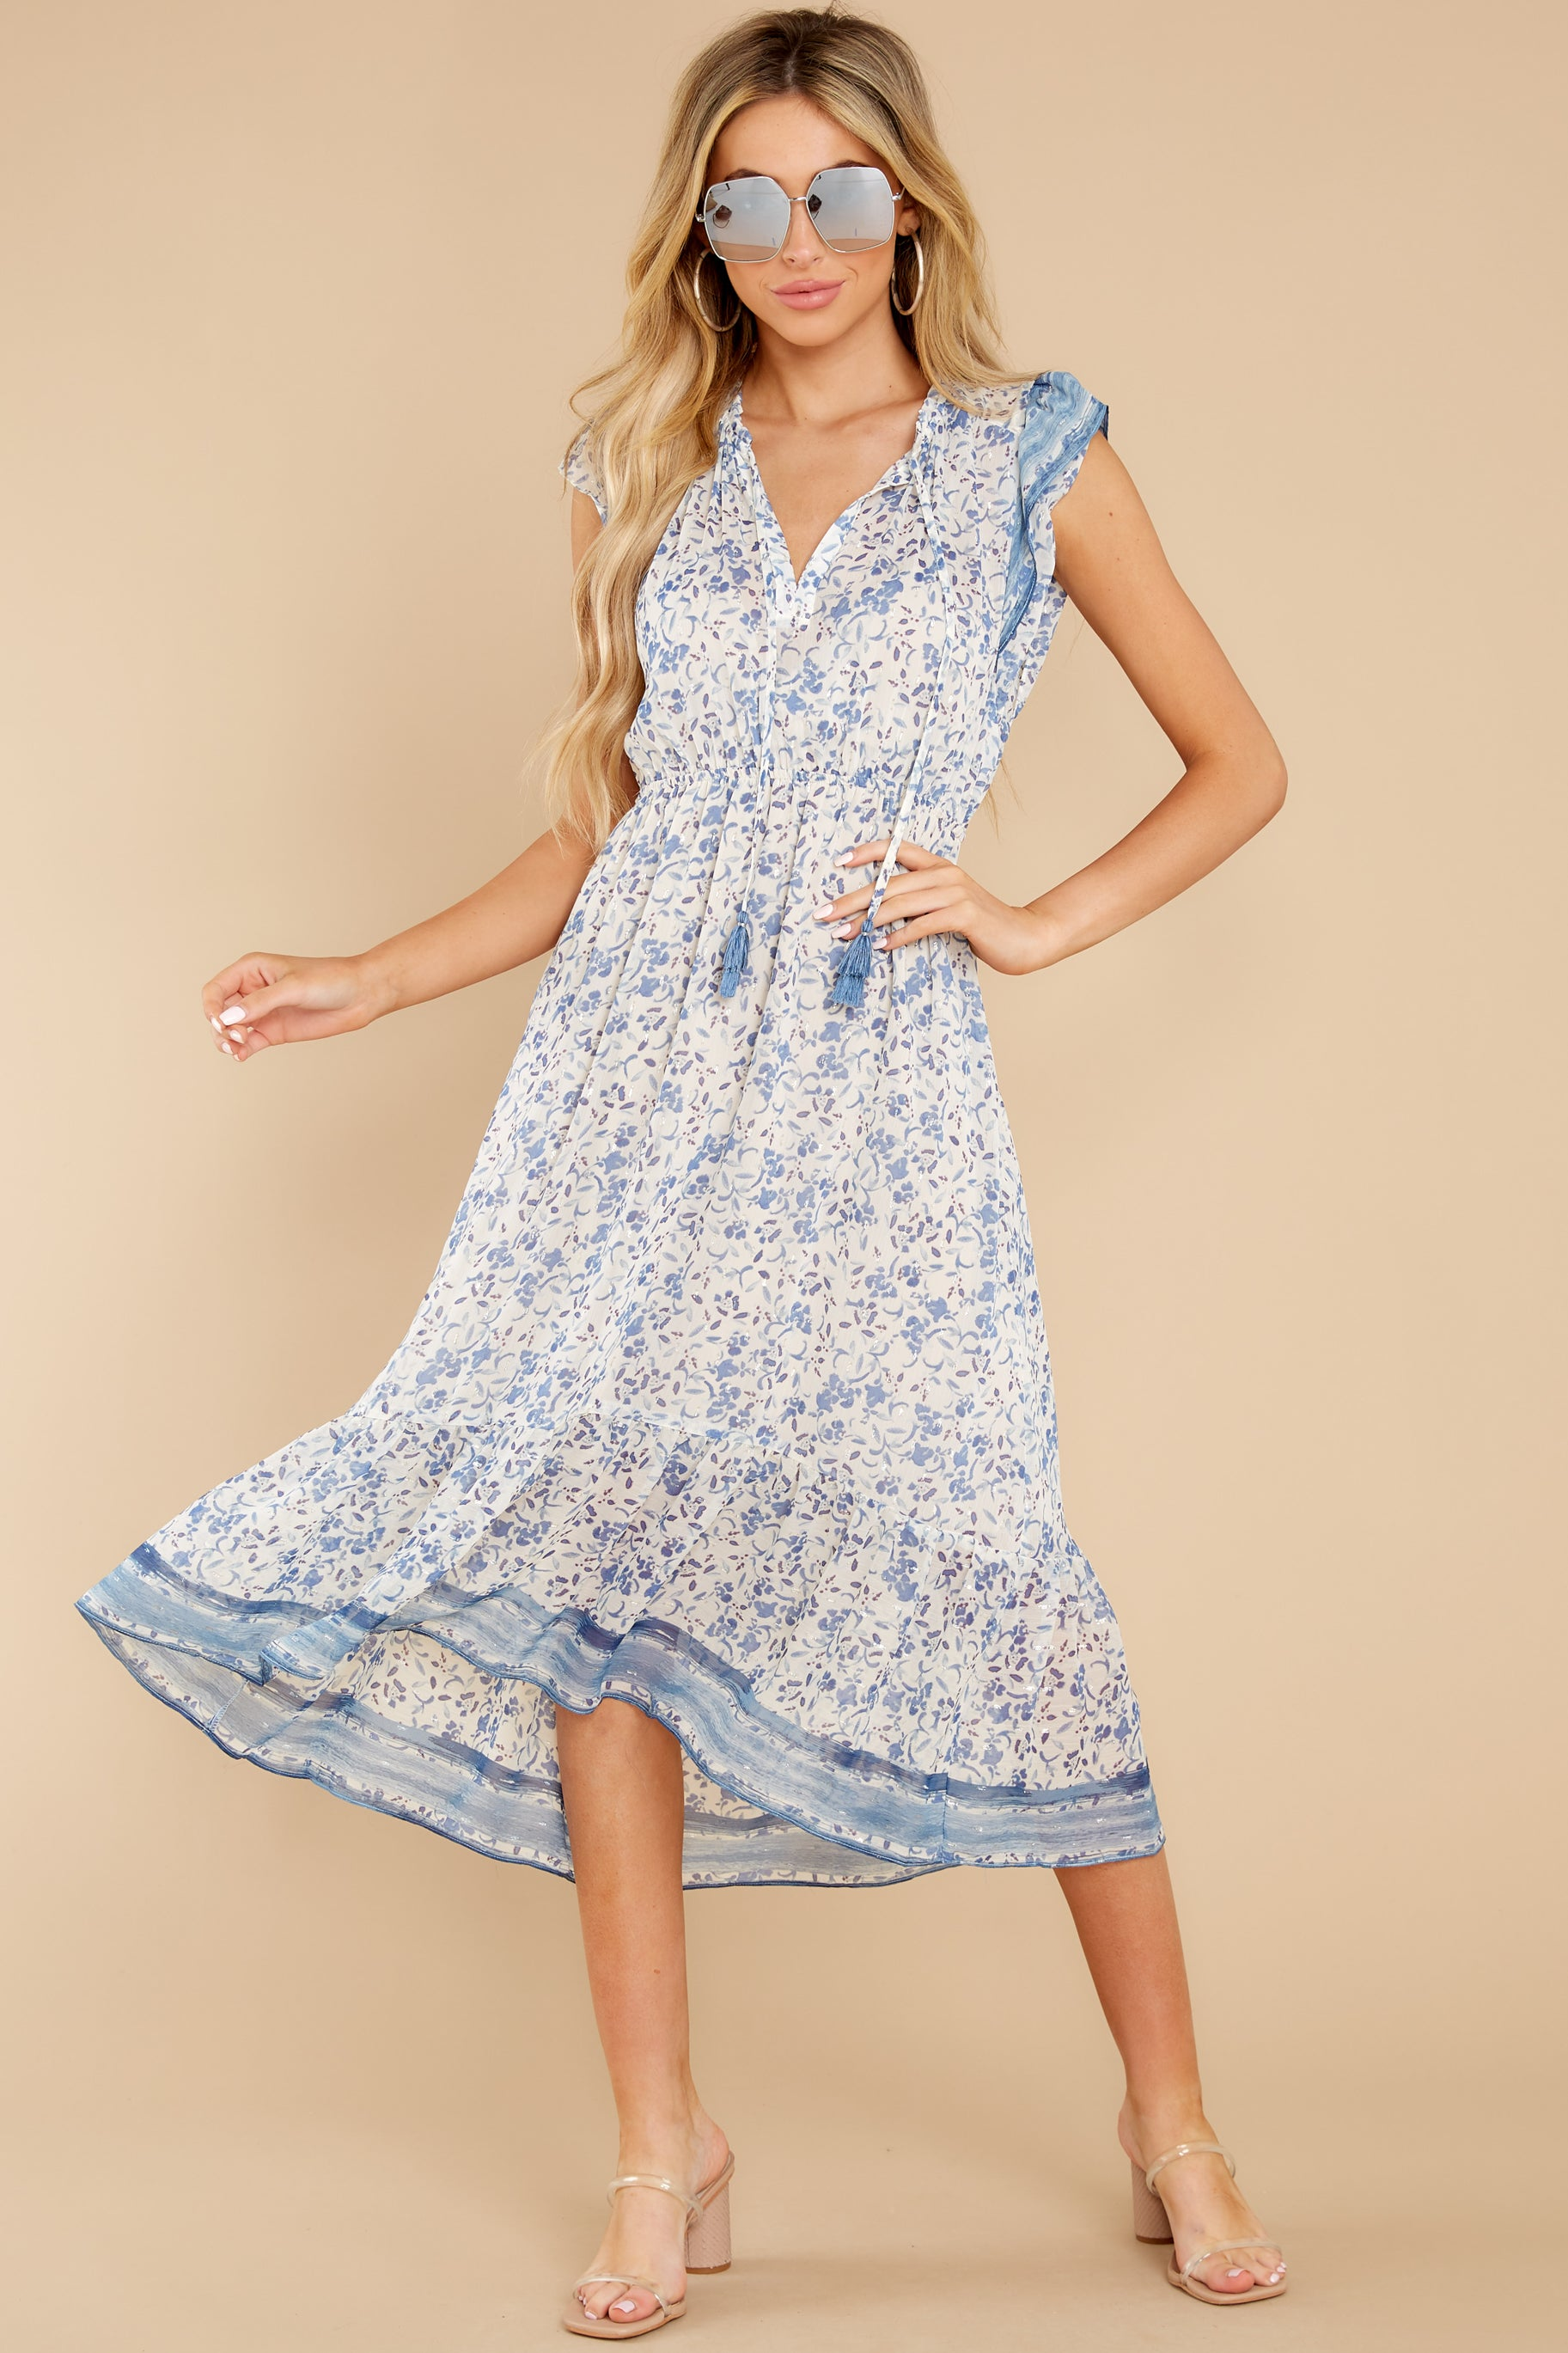 6 Nothing But Us Blue Floral Print Midi Dress at reddress.com